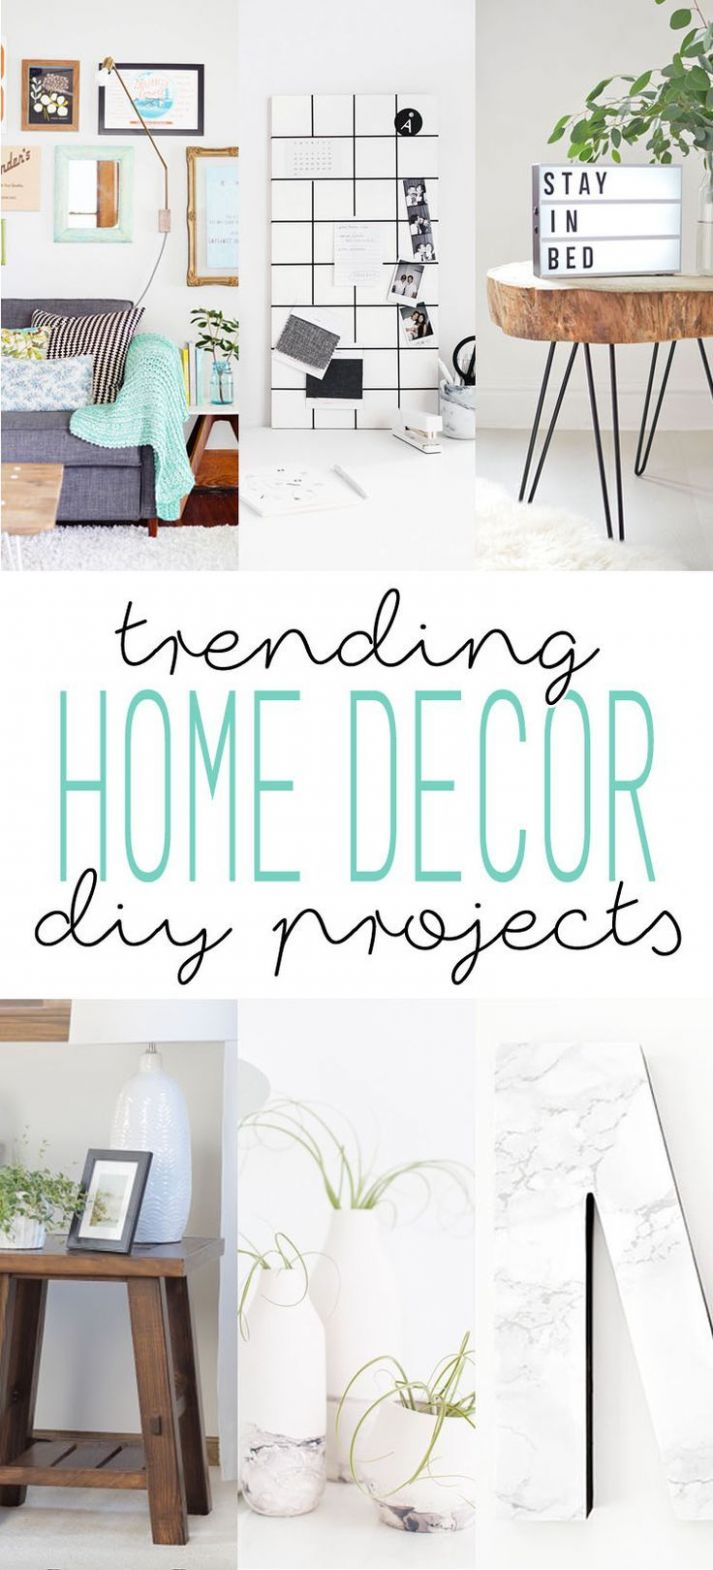 Trending Home Decor DIY Projects | Home decor, Home decor trends, Home - diy home decor room